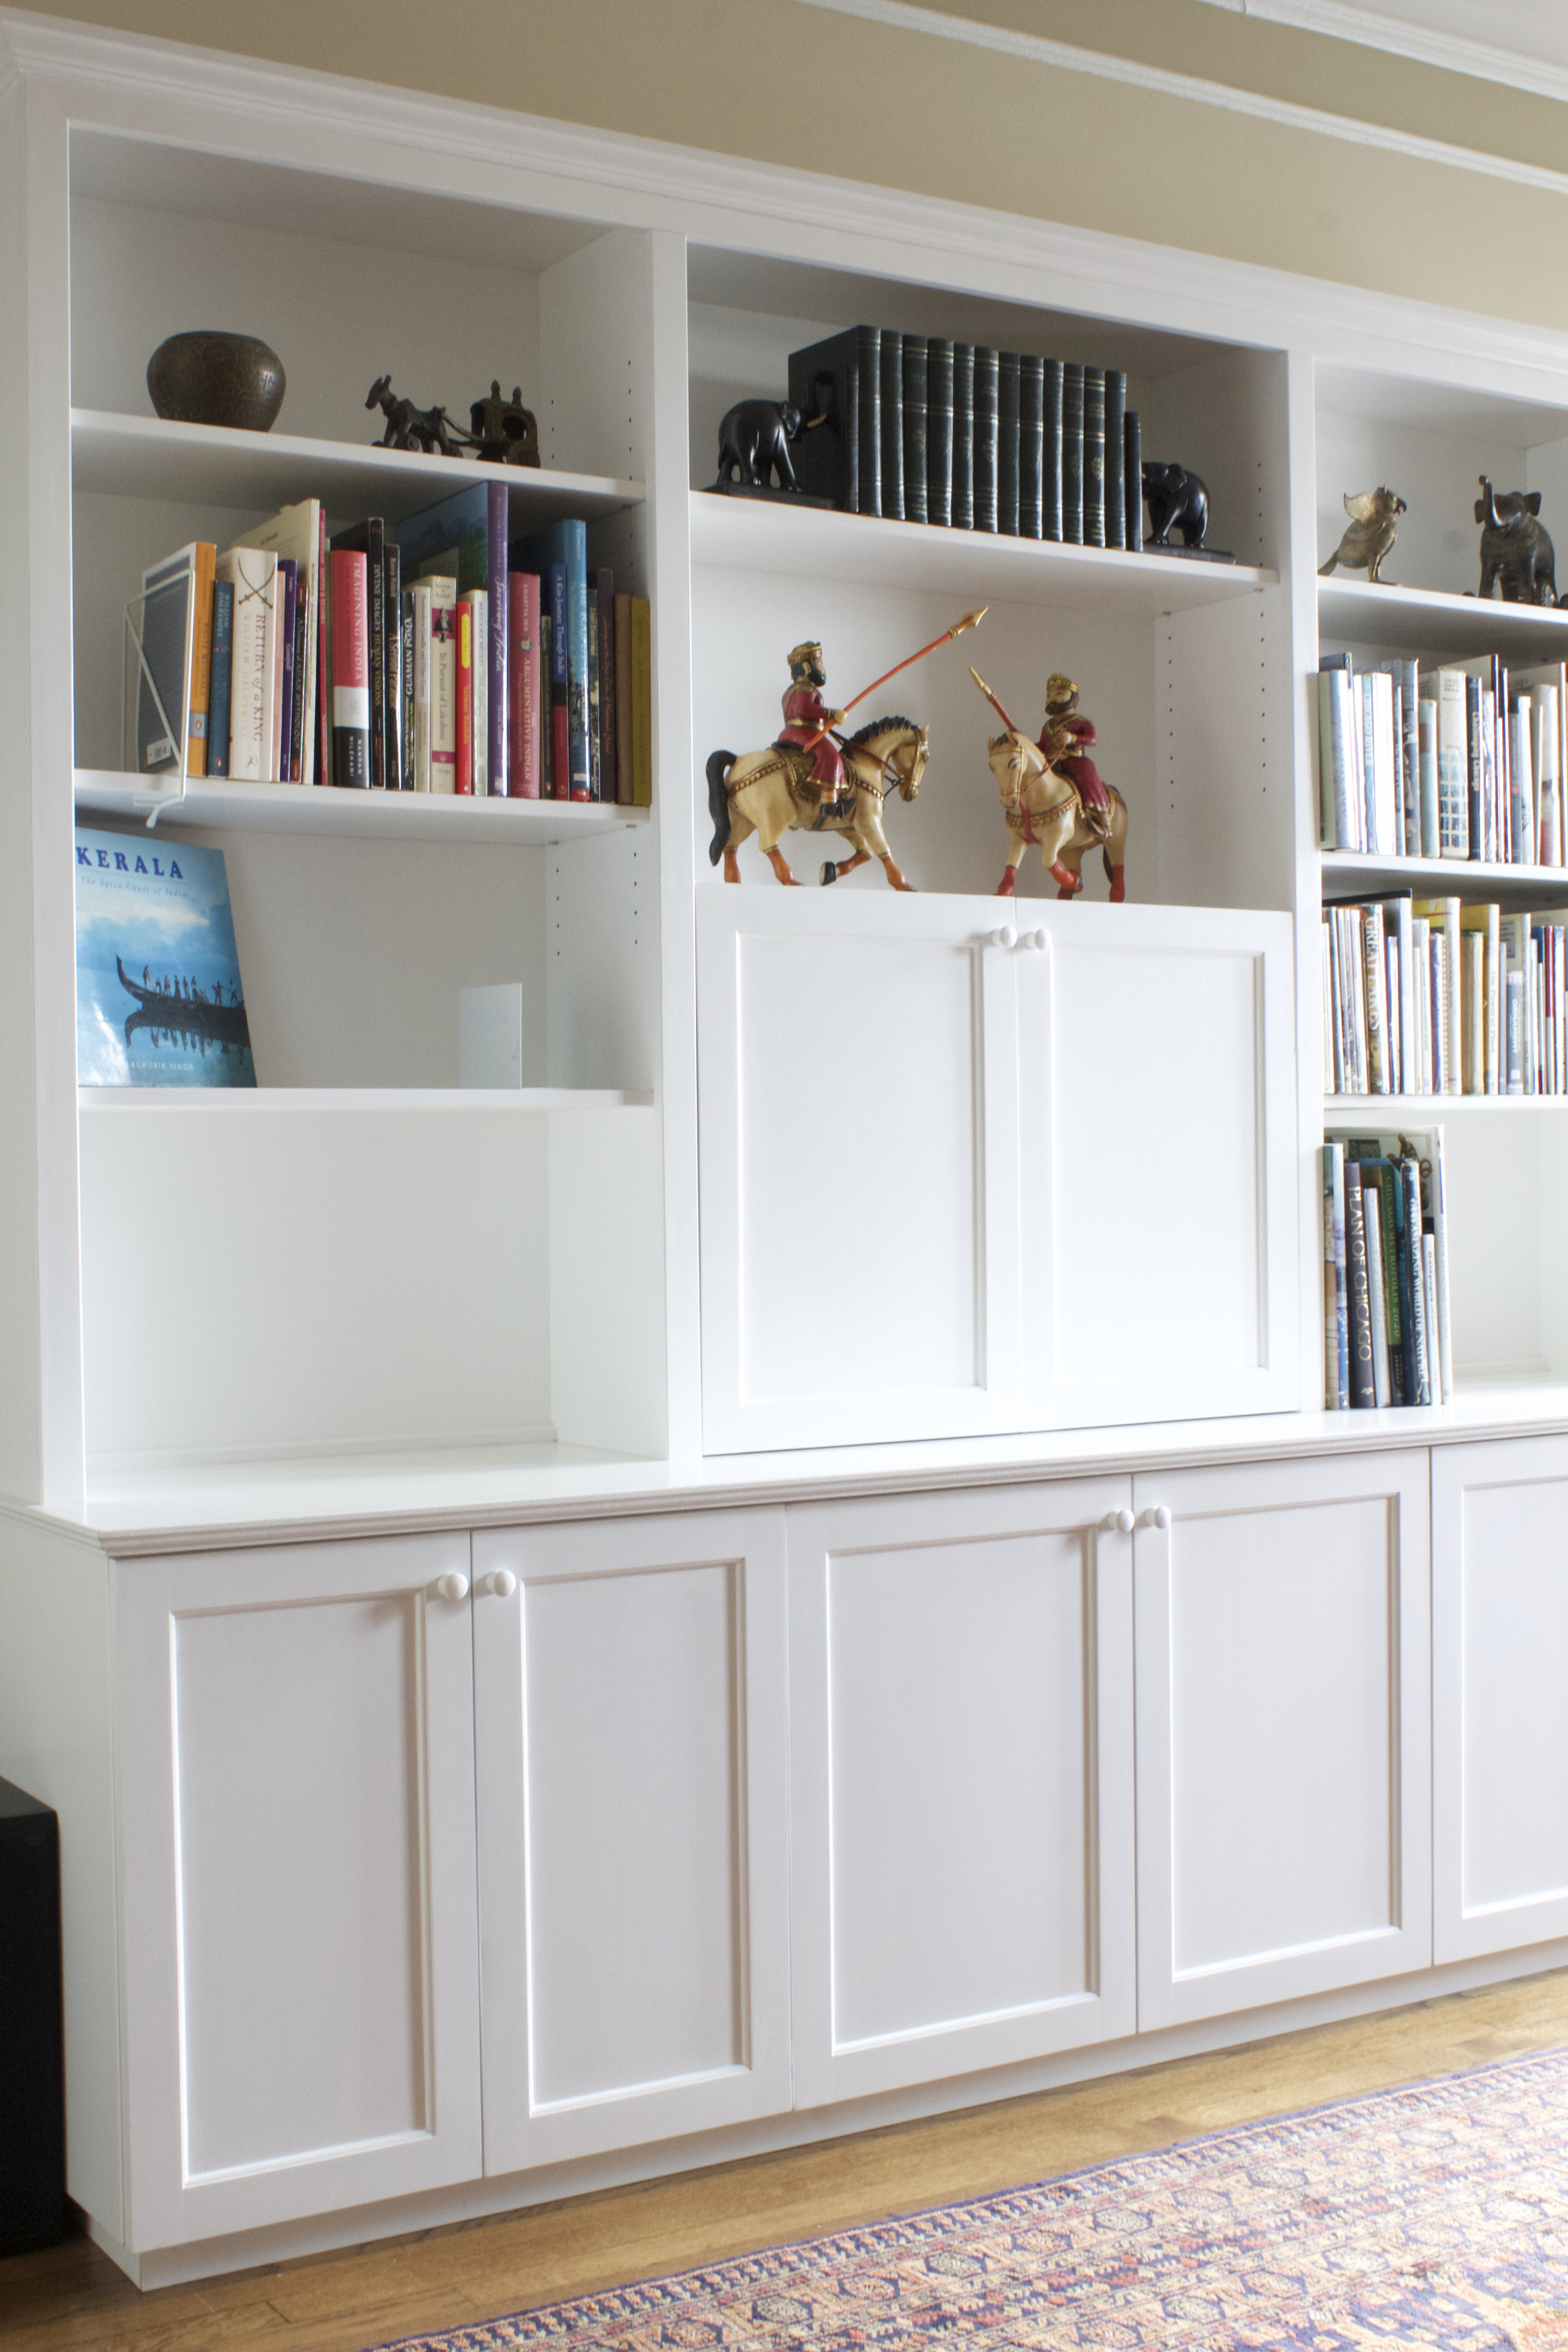 Painted White Cabinets with Hutch Shelving